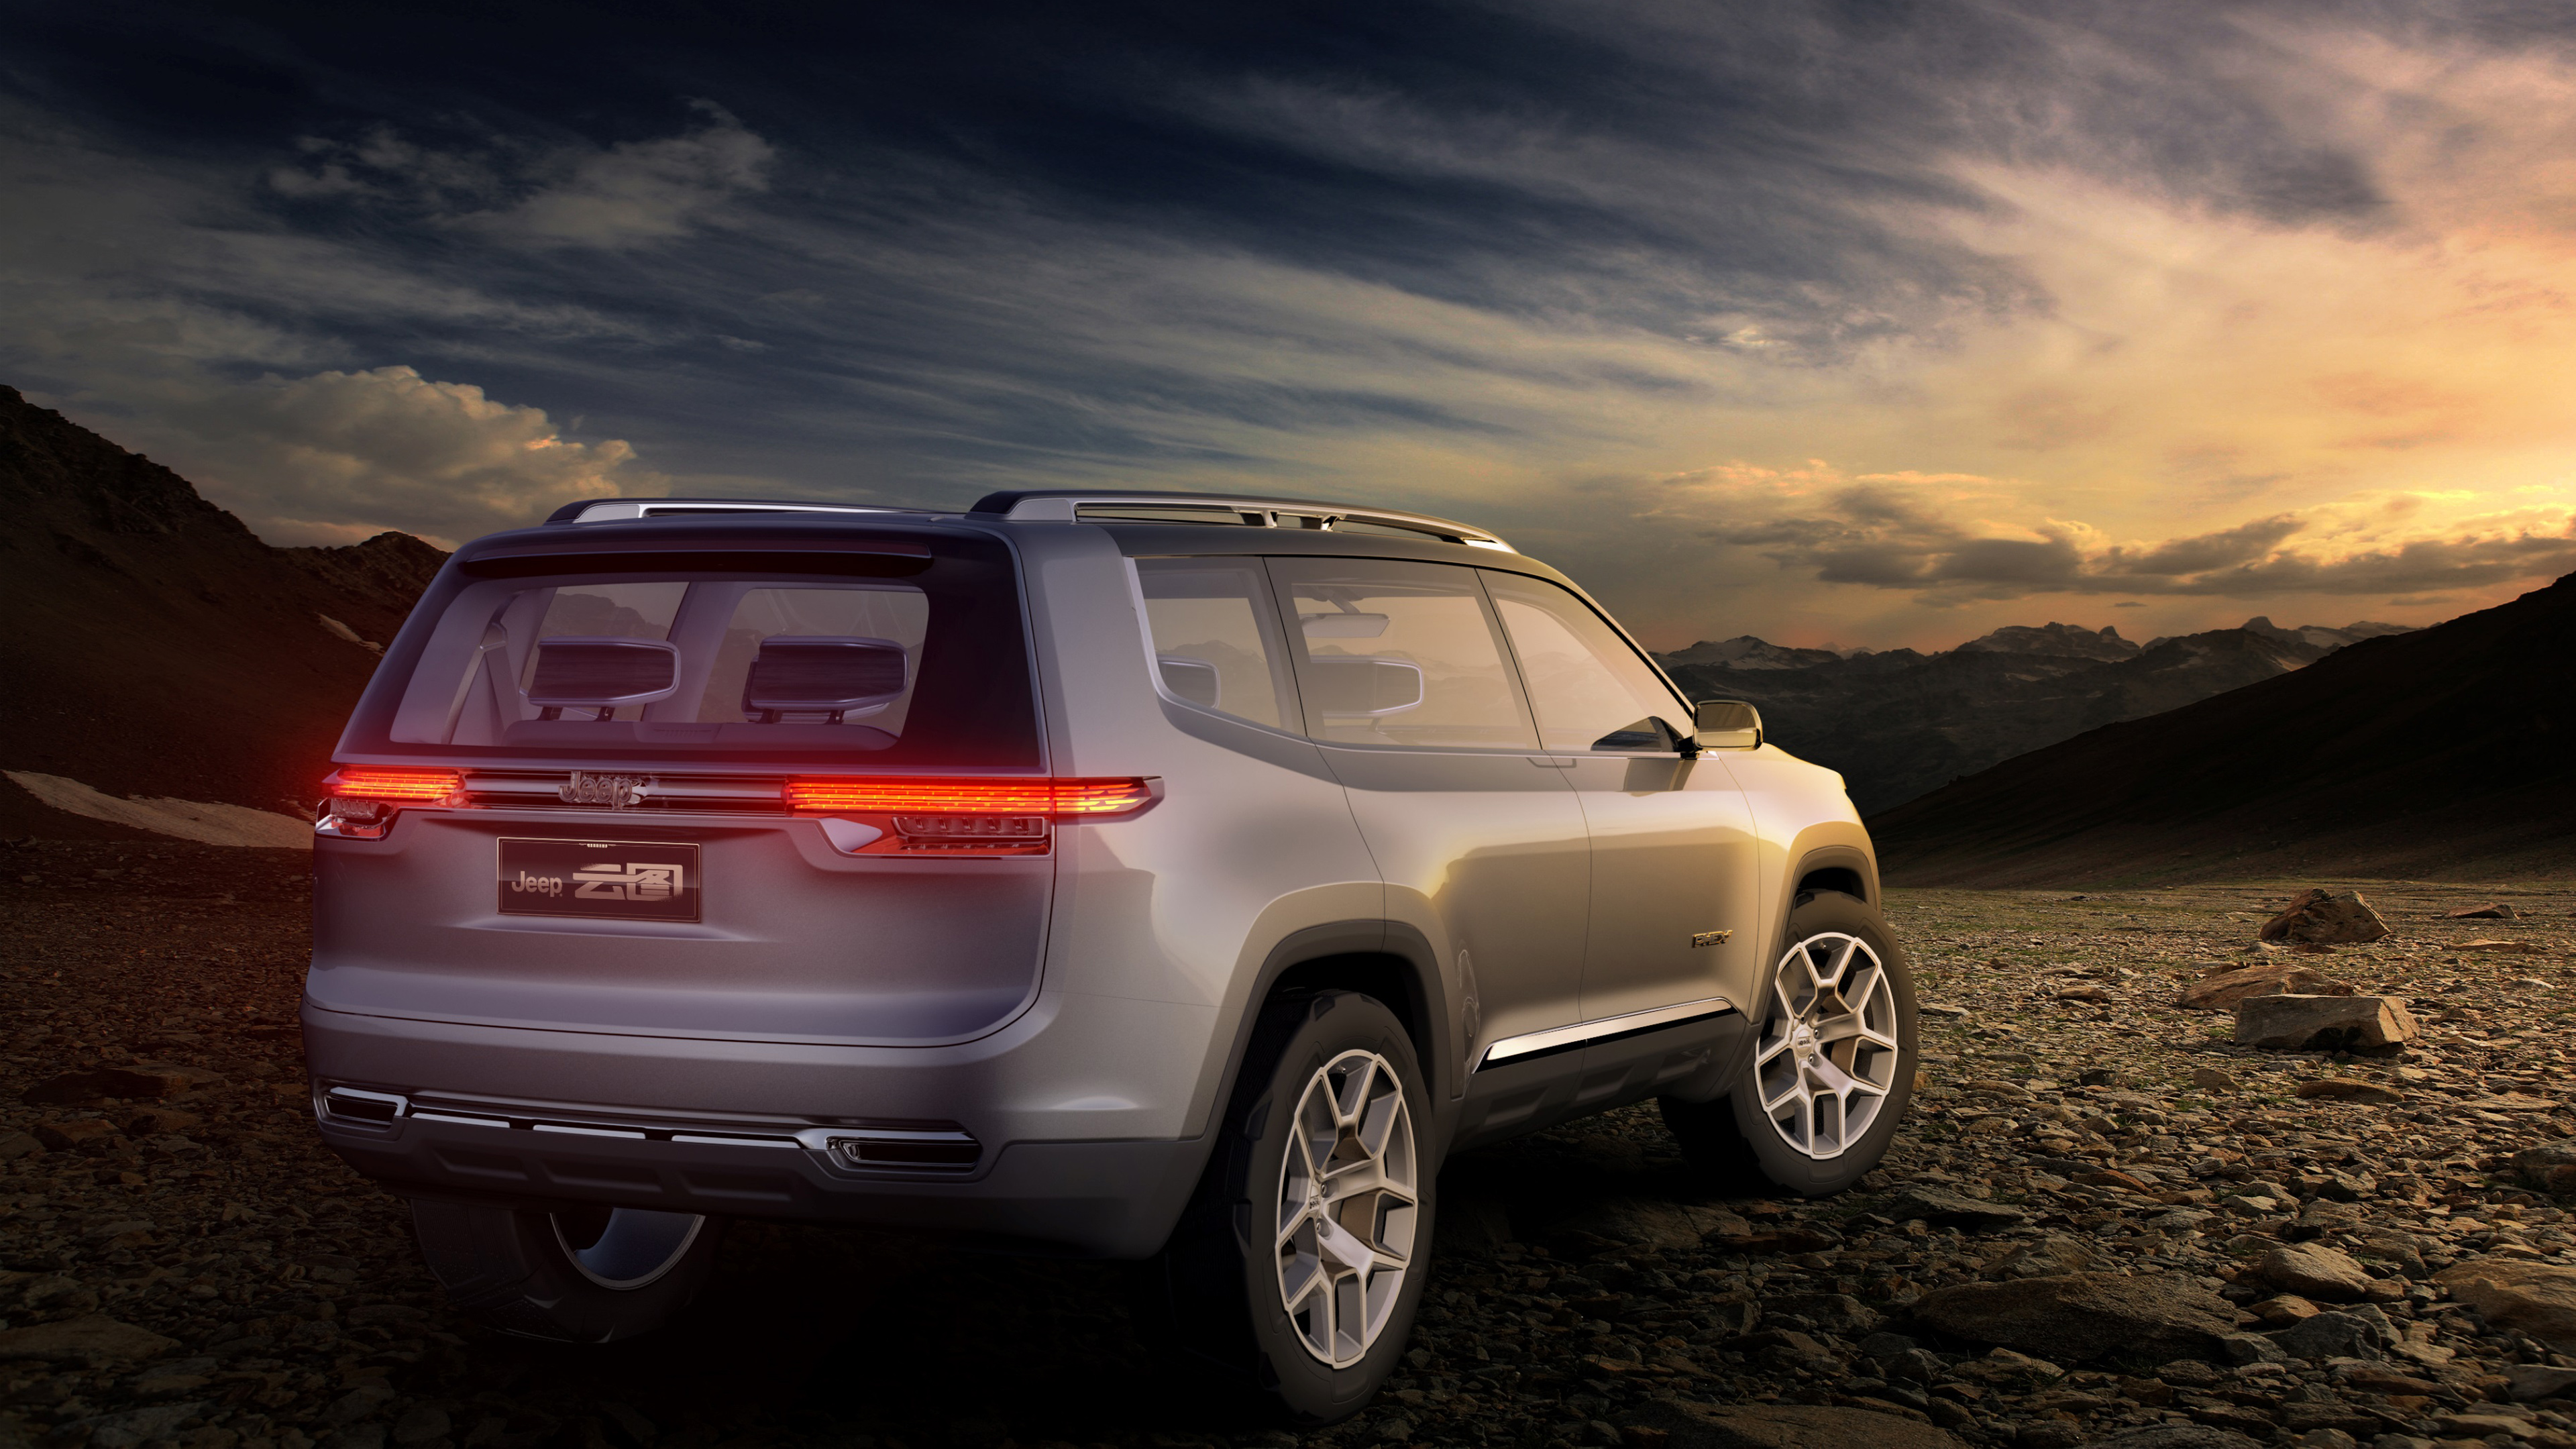 Jeep Yuntu Concept Electric SUV Wallpaper | HD Car ...